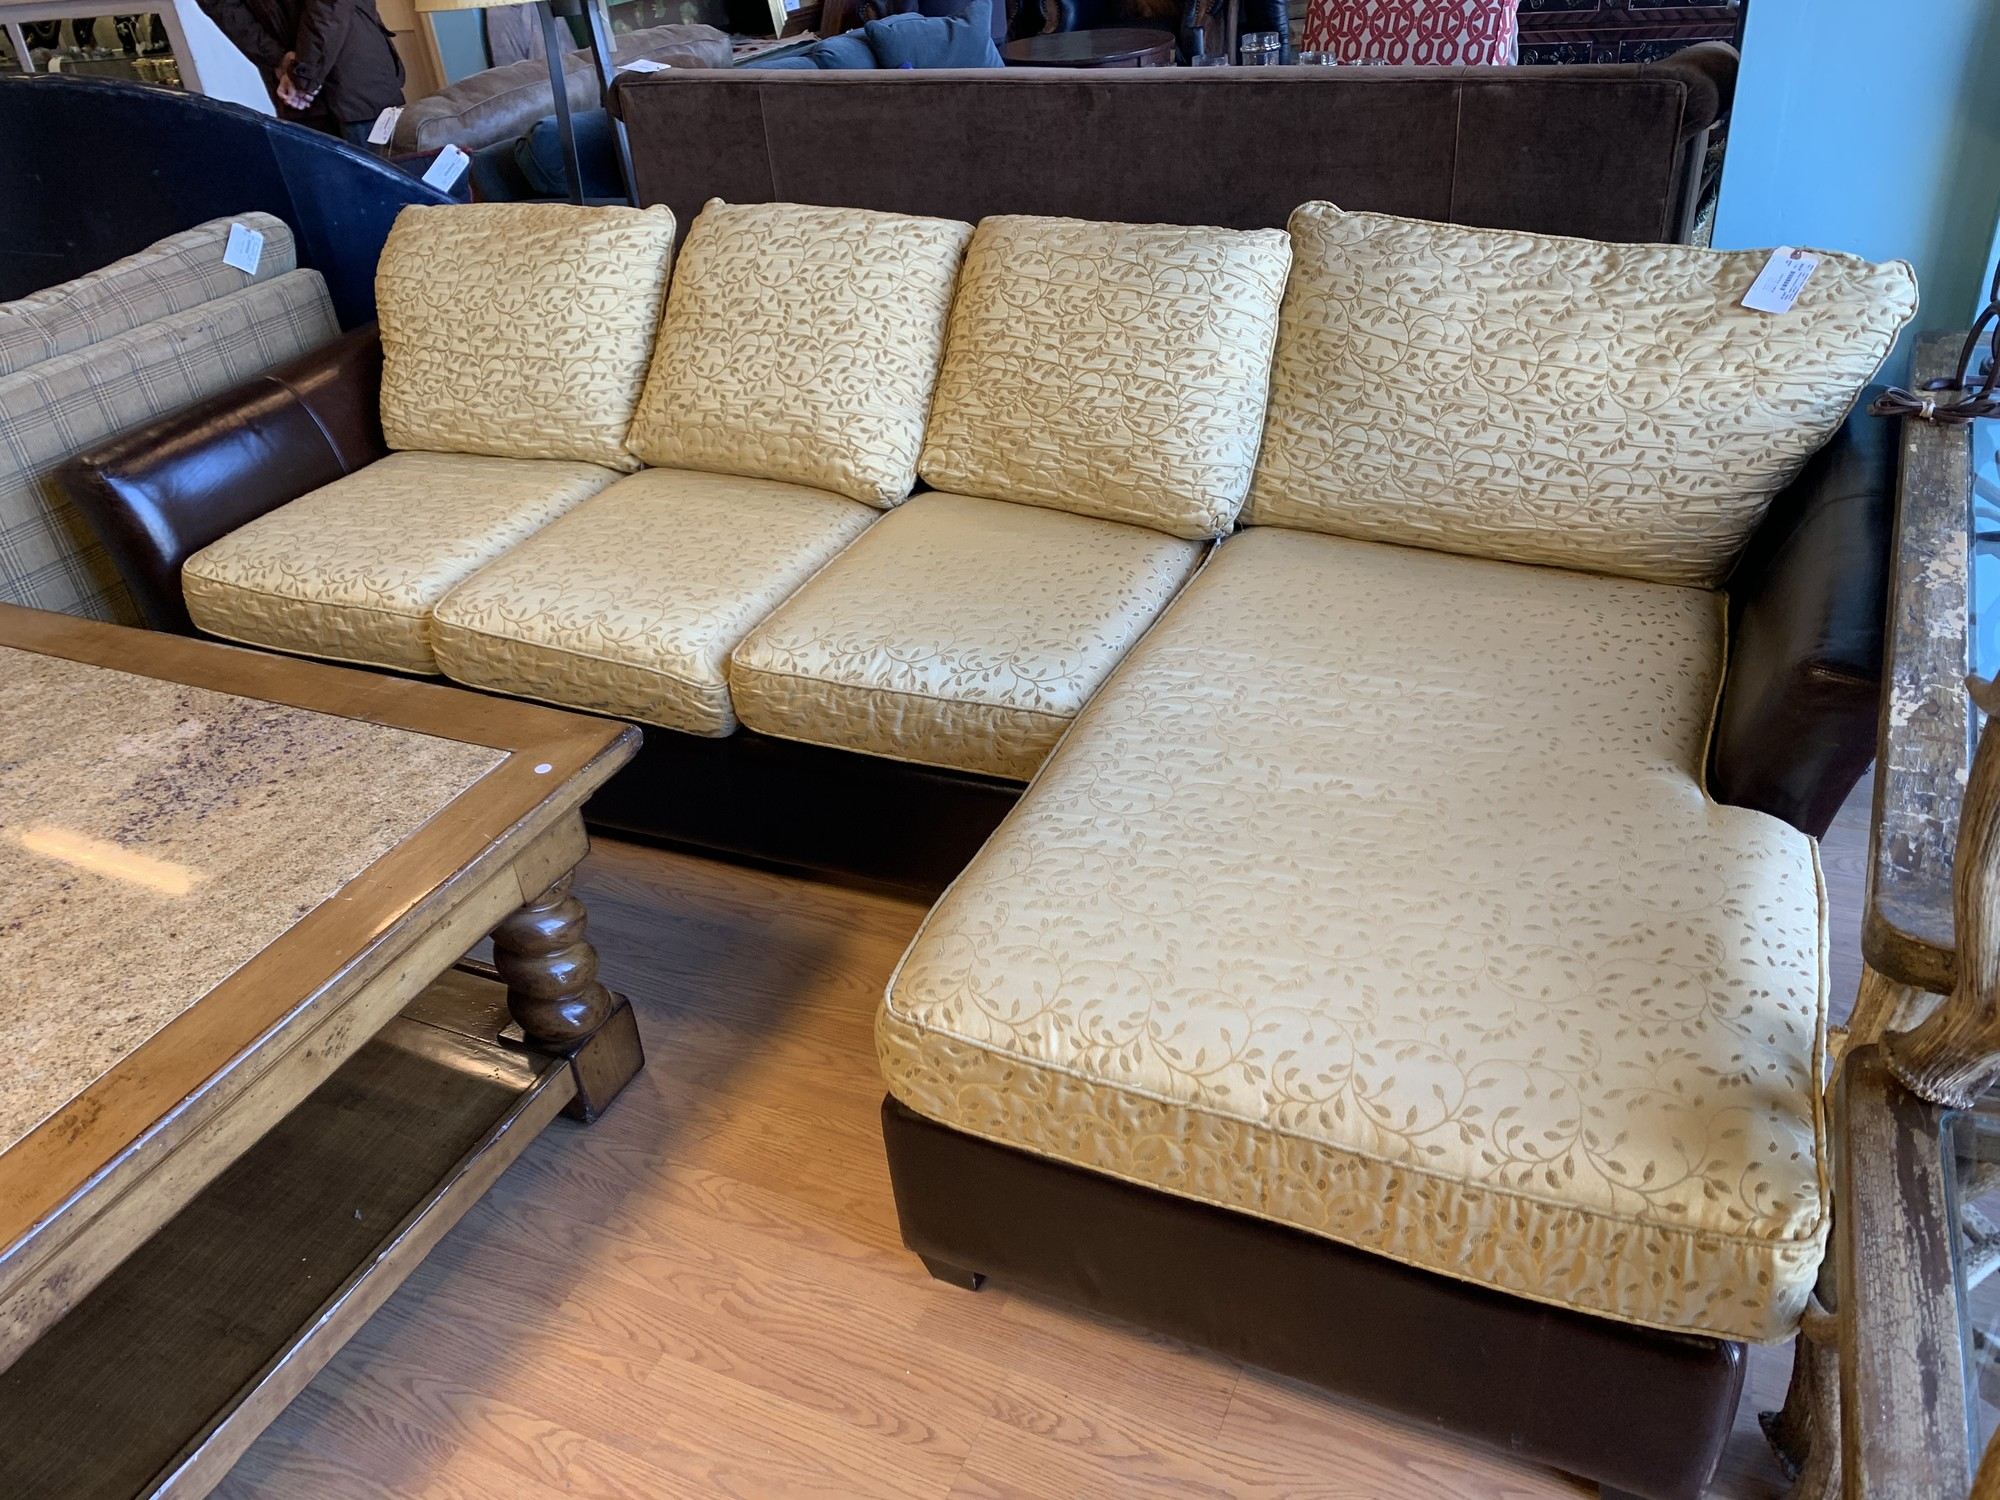 "Sleeper Sectional Leather, Yellowfa, Queen<br /> Size: 10' x 63"" (chaise) x 29"" (h) x 38"" (d)"